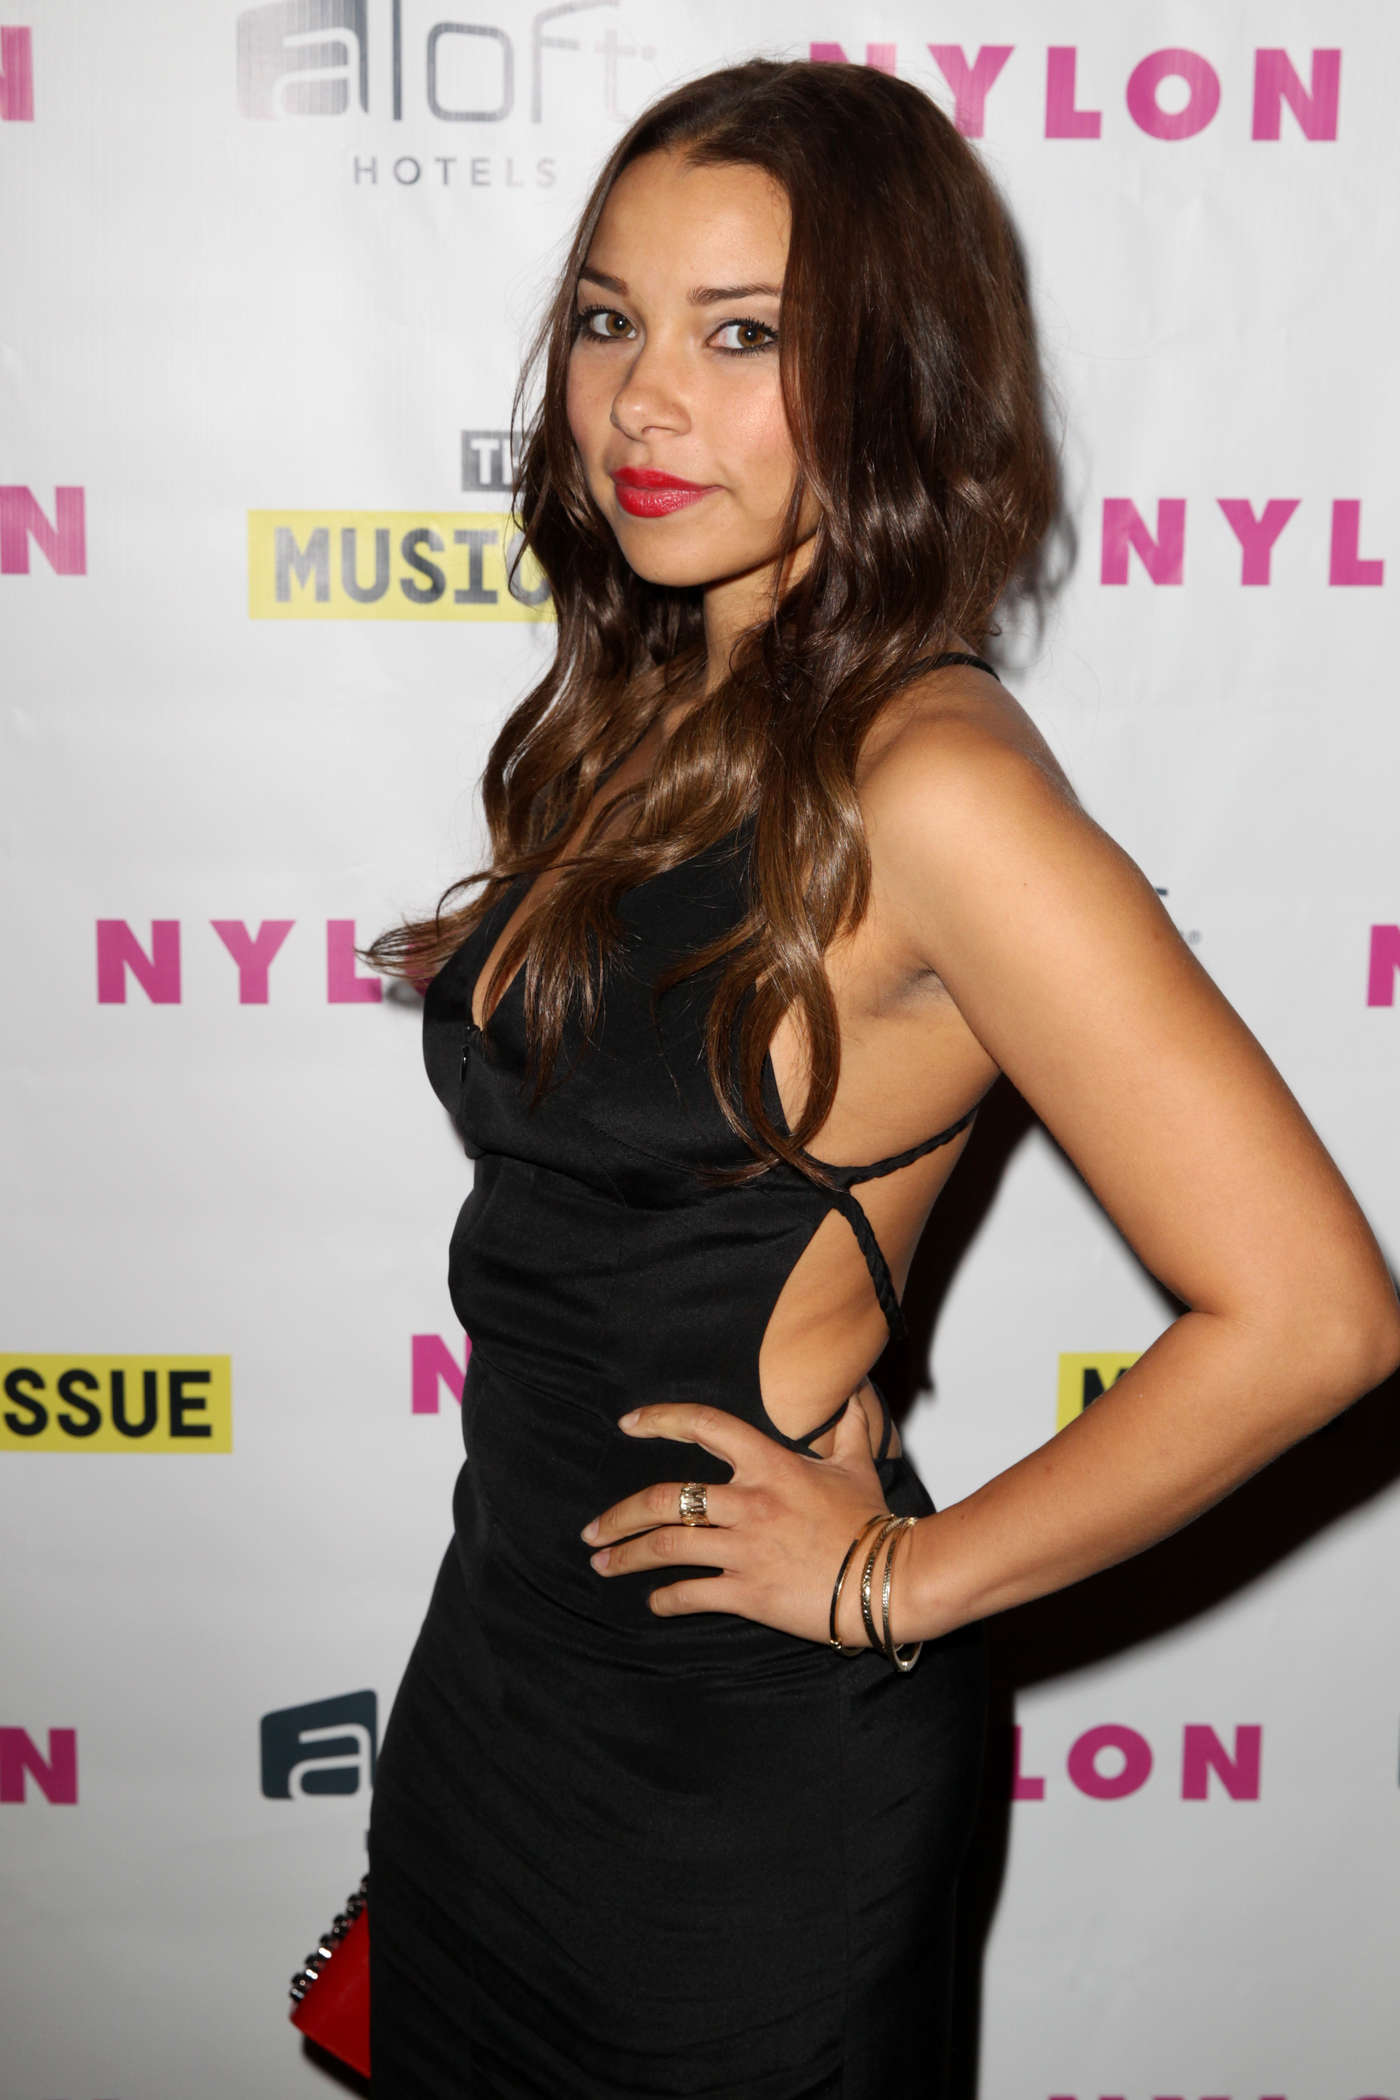 Jessica Parker Kennedy Nylon Magazine Music Issue Party in Los Angeles